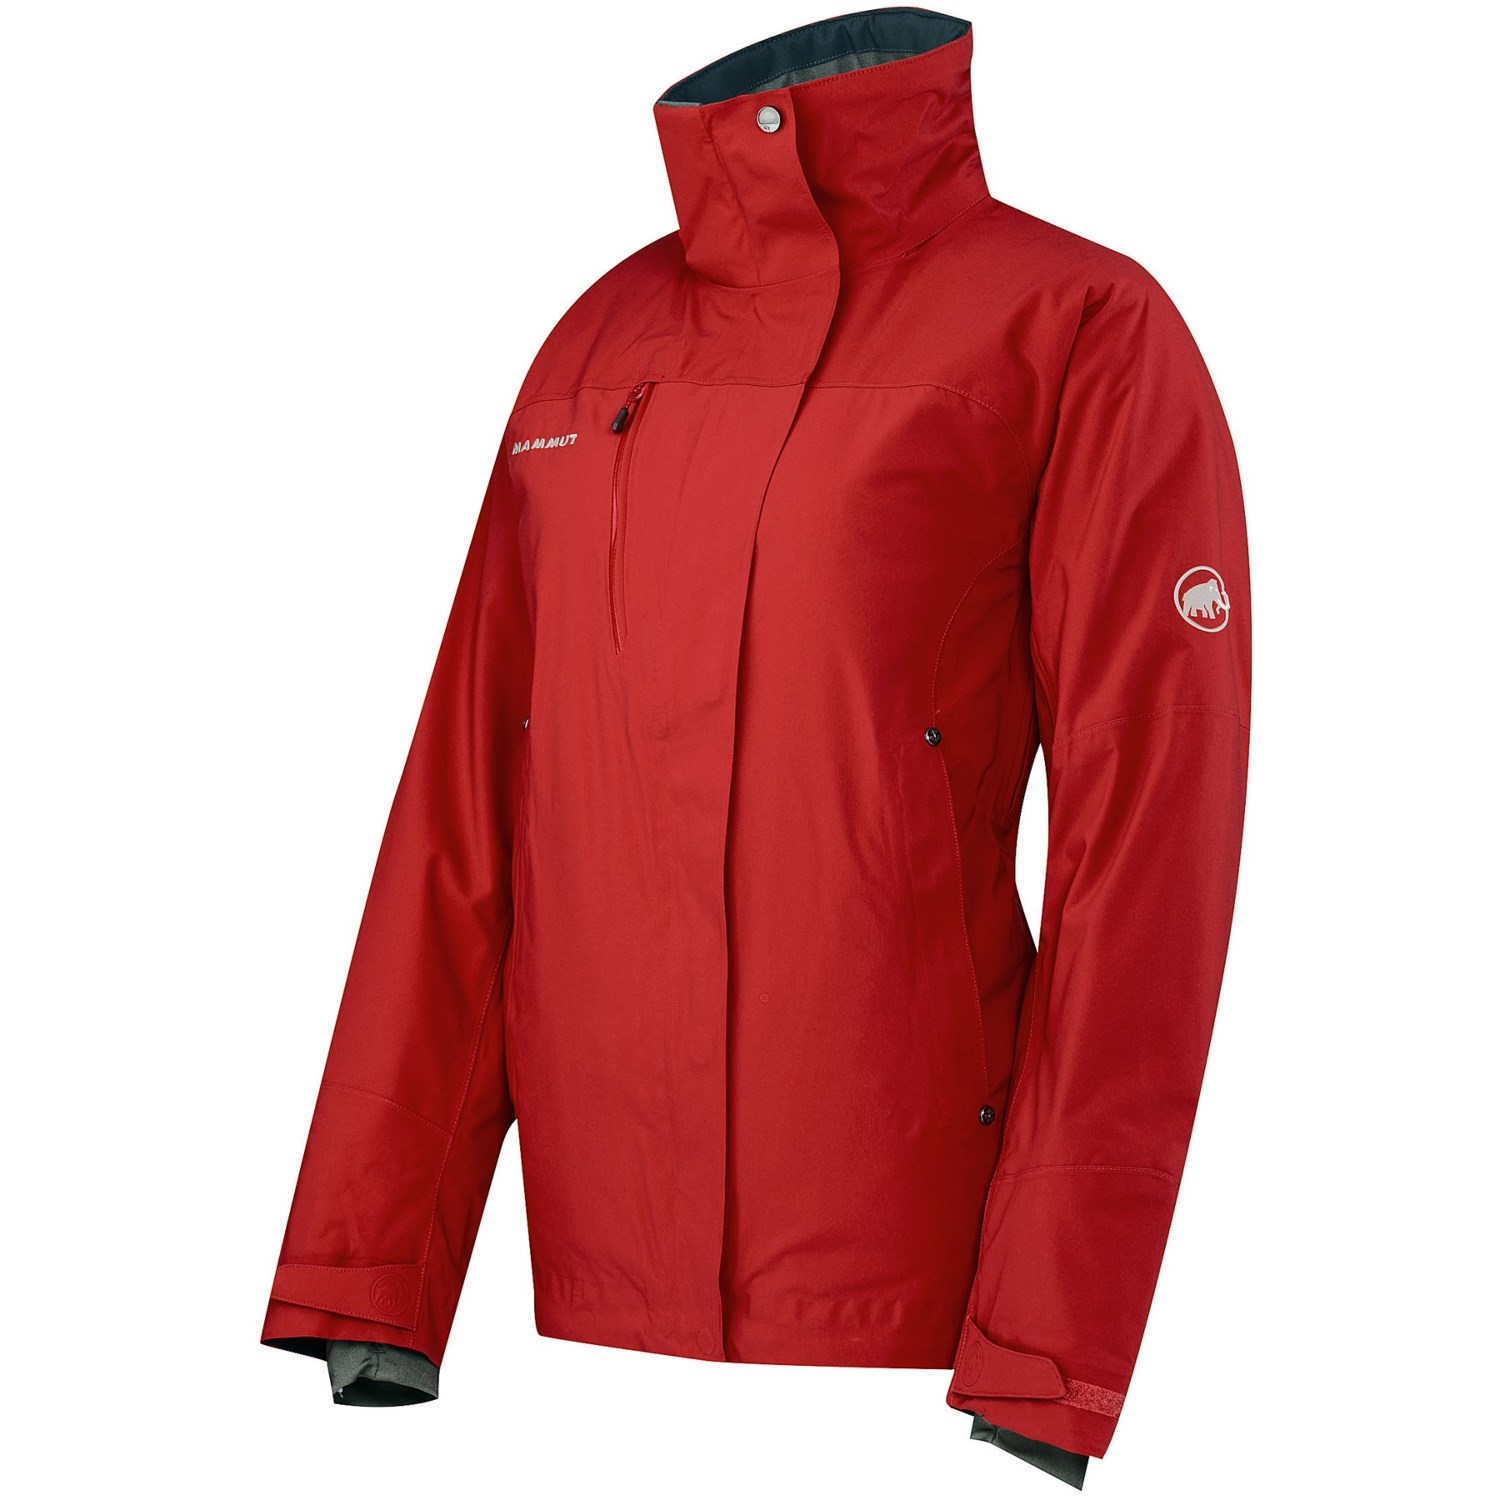 Where to buy ski jackets